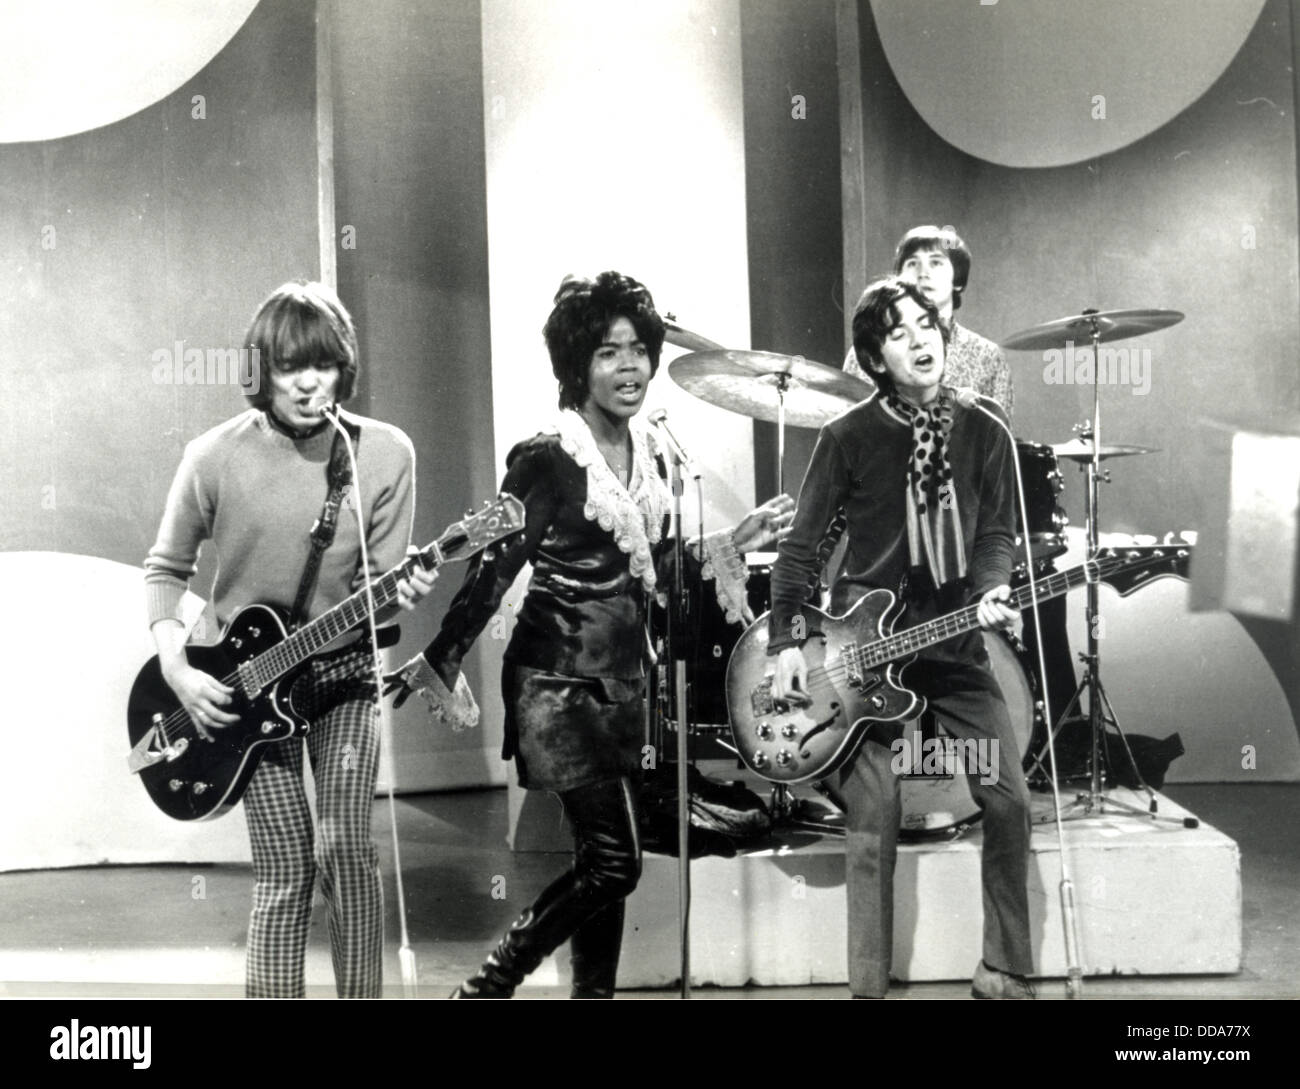 Small Faces - P.P. Arnold - Don't Burst My Bubble - Come Home Baby